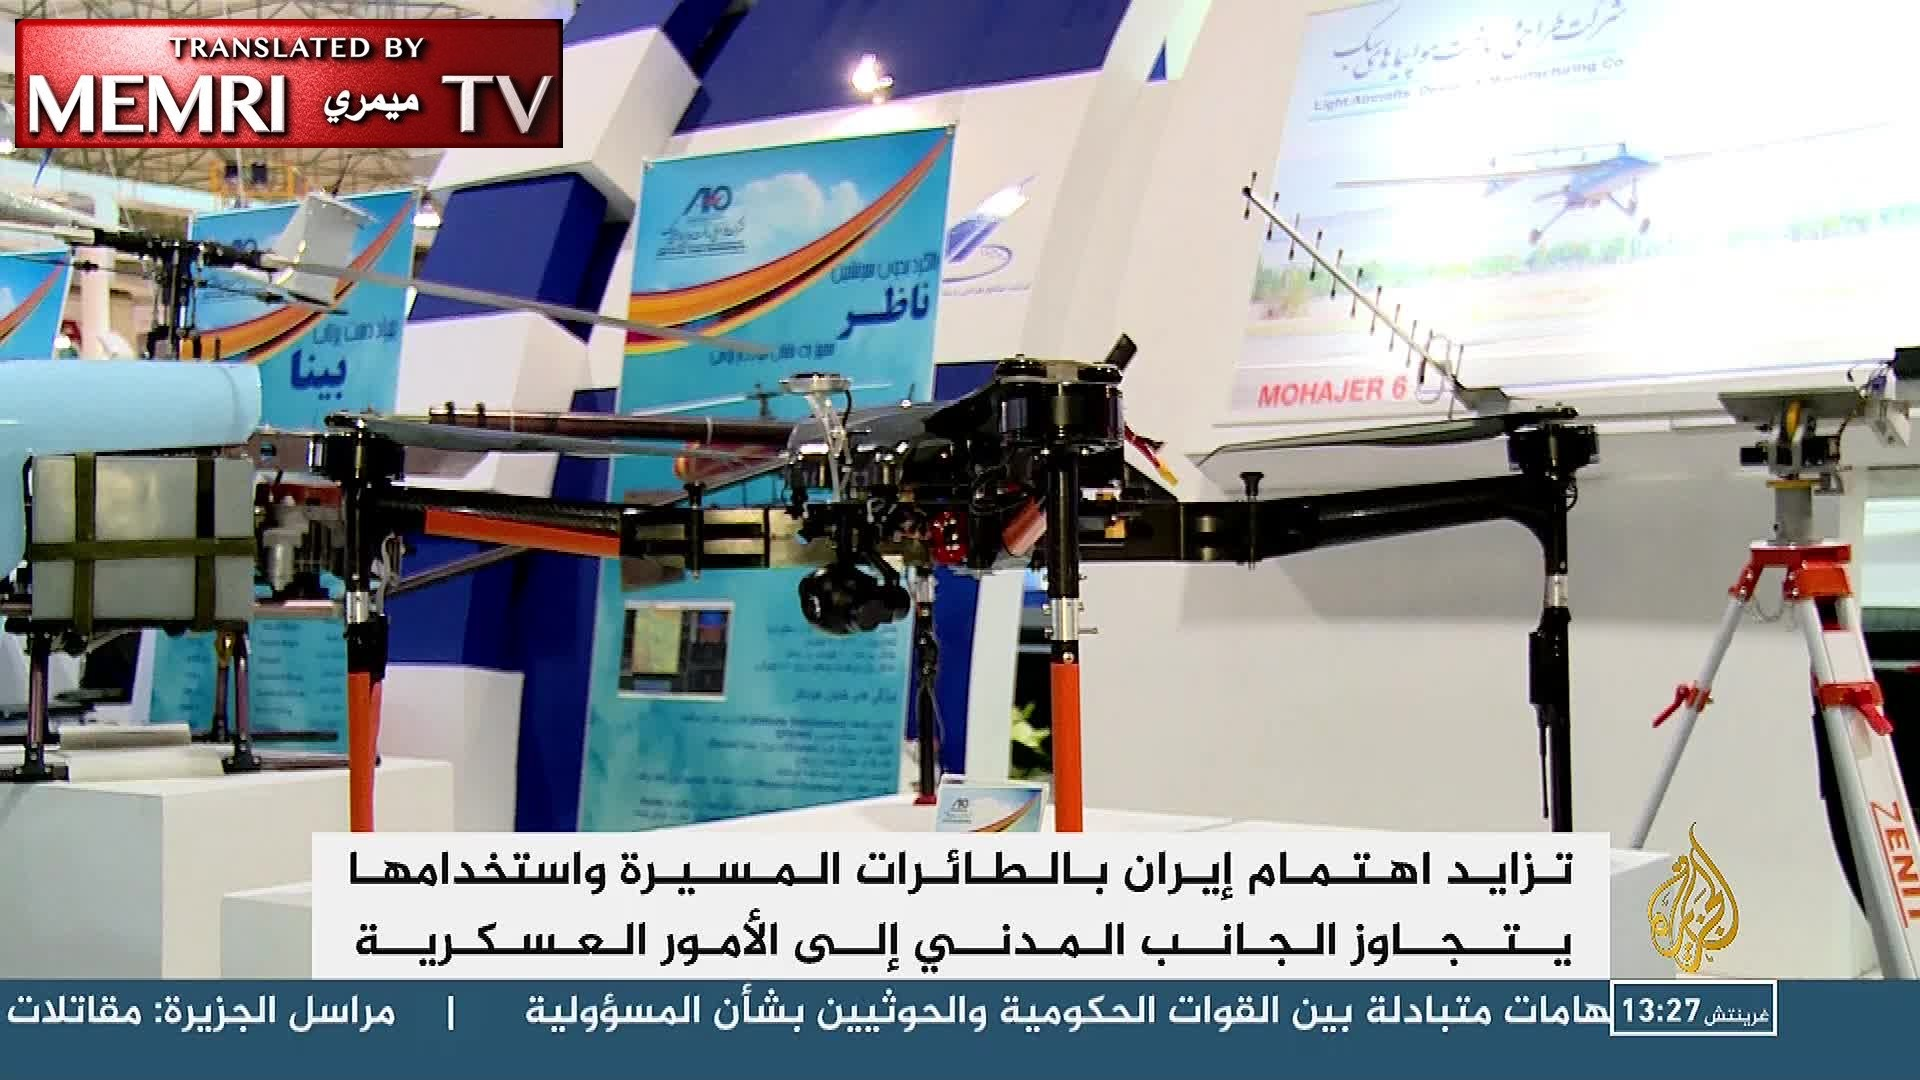 Al-Jazeera Report on Iranian Military UAVs: They Monitor Iranian Airspace and Enemy Navies, Can Strike Targets 1,000 km Away